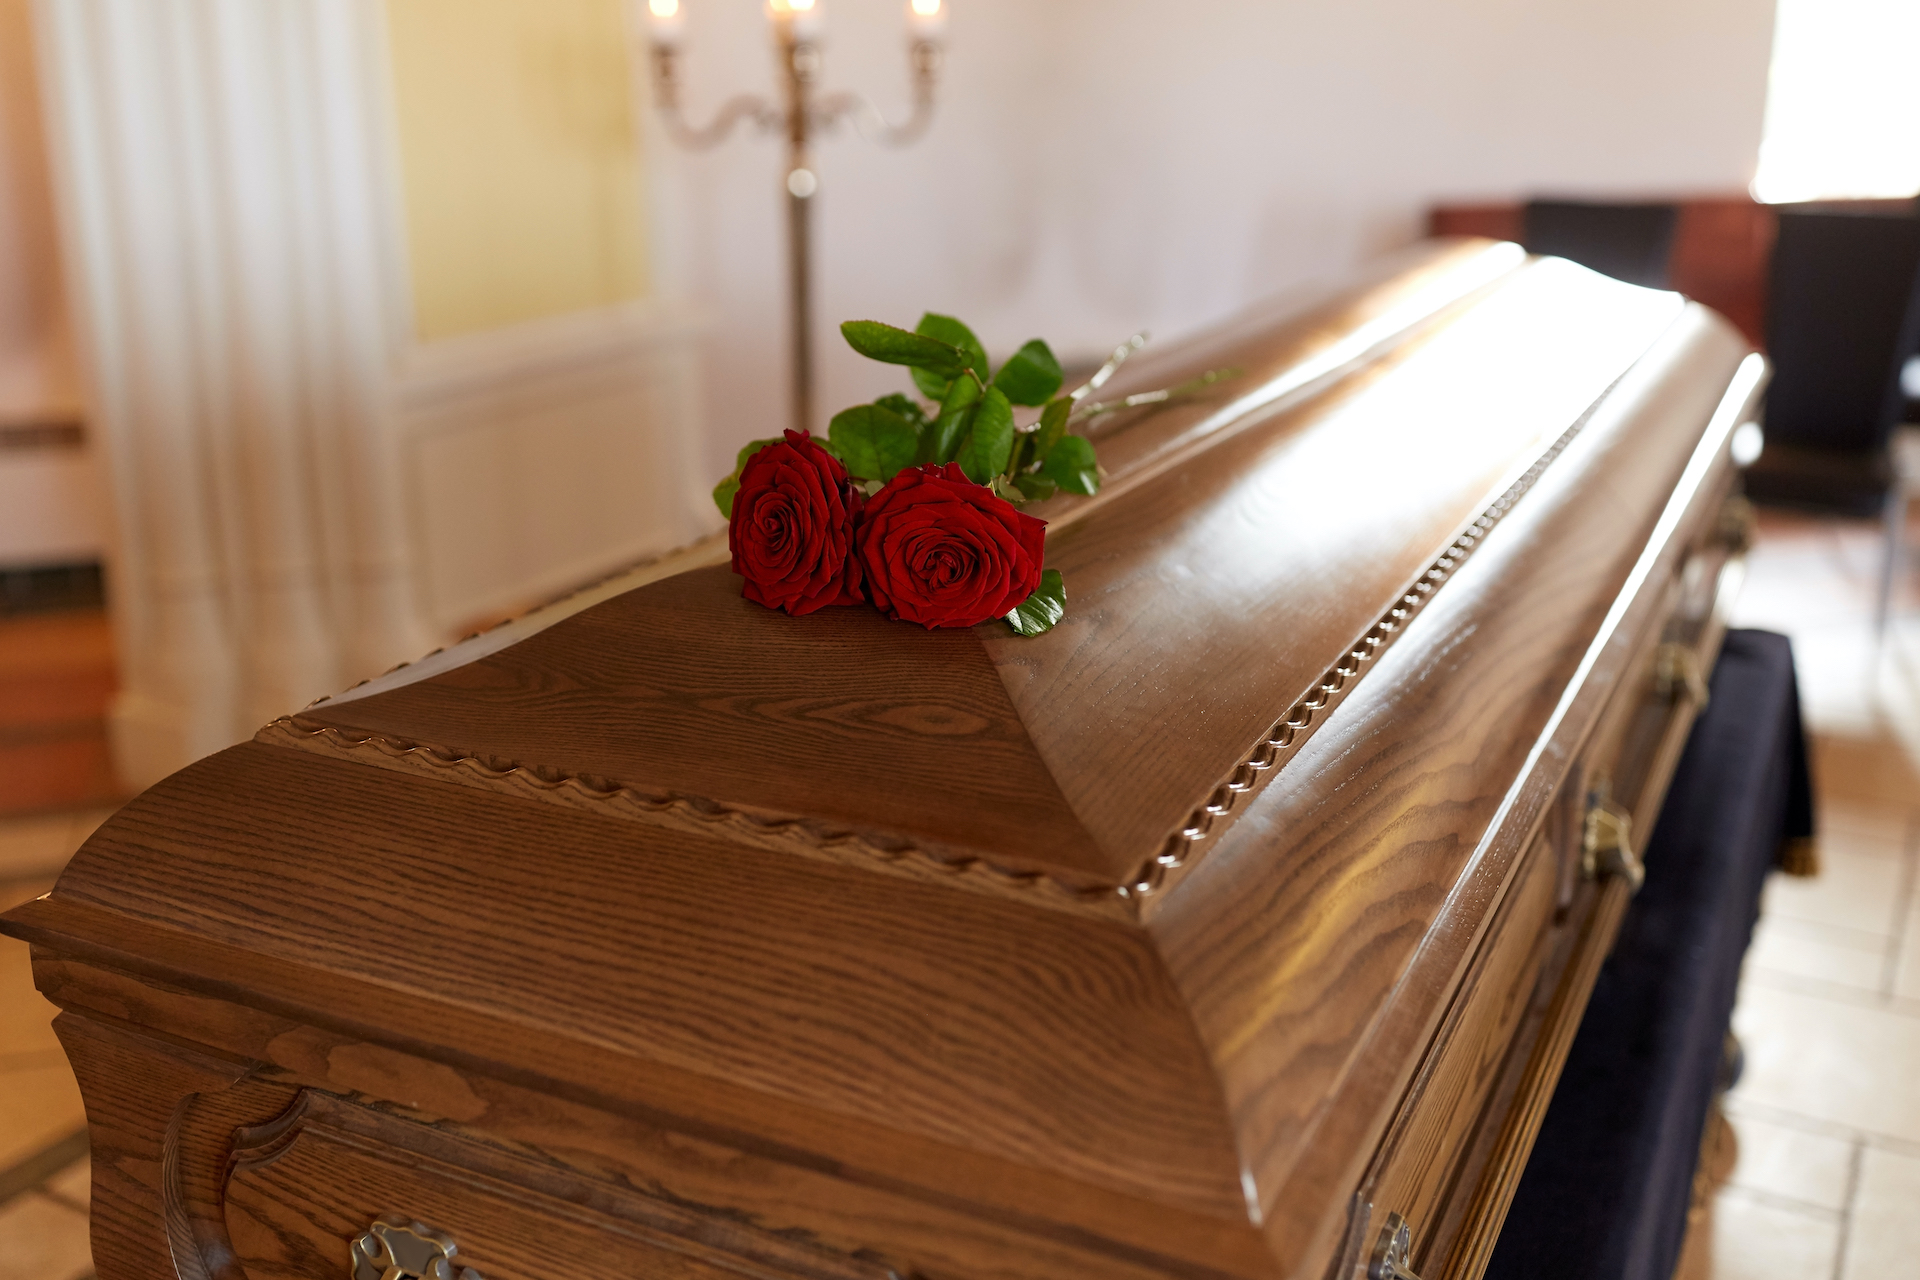 wrongful death with red roses - Personal Injury Attorney in Nashville - Wrongful Death Attorney, Truck Accident Lawyer, Car Accident Lawyer, and more | Meyers Injury Law